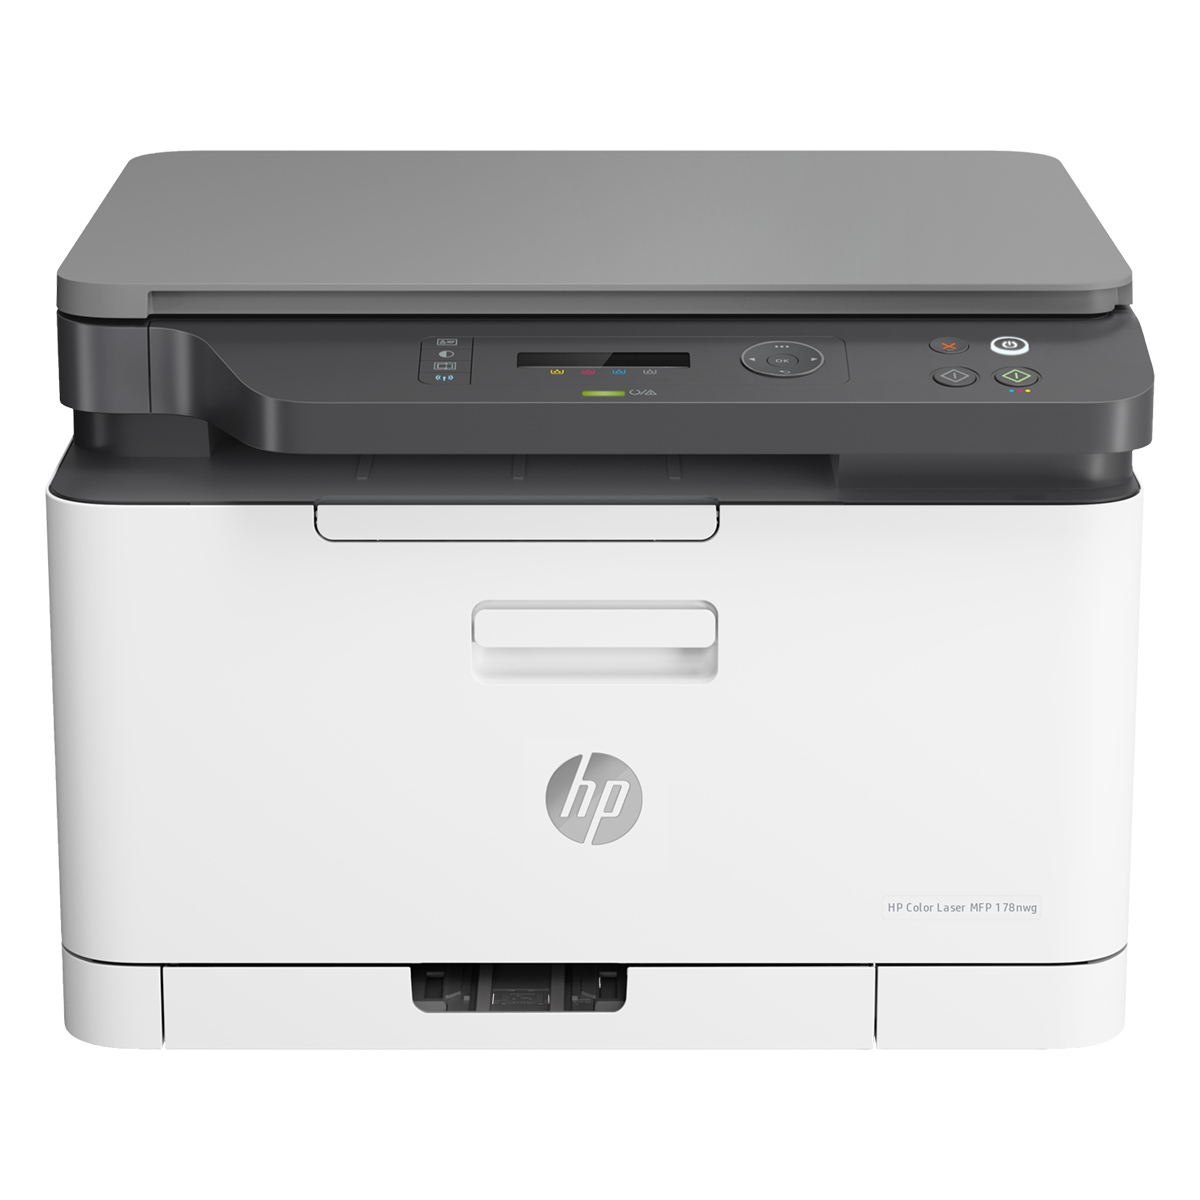 HP Color Laser MFP 178nw - 4ZB96A